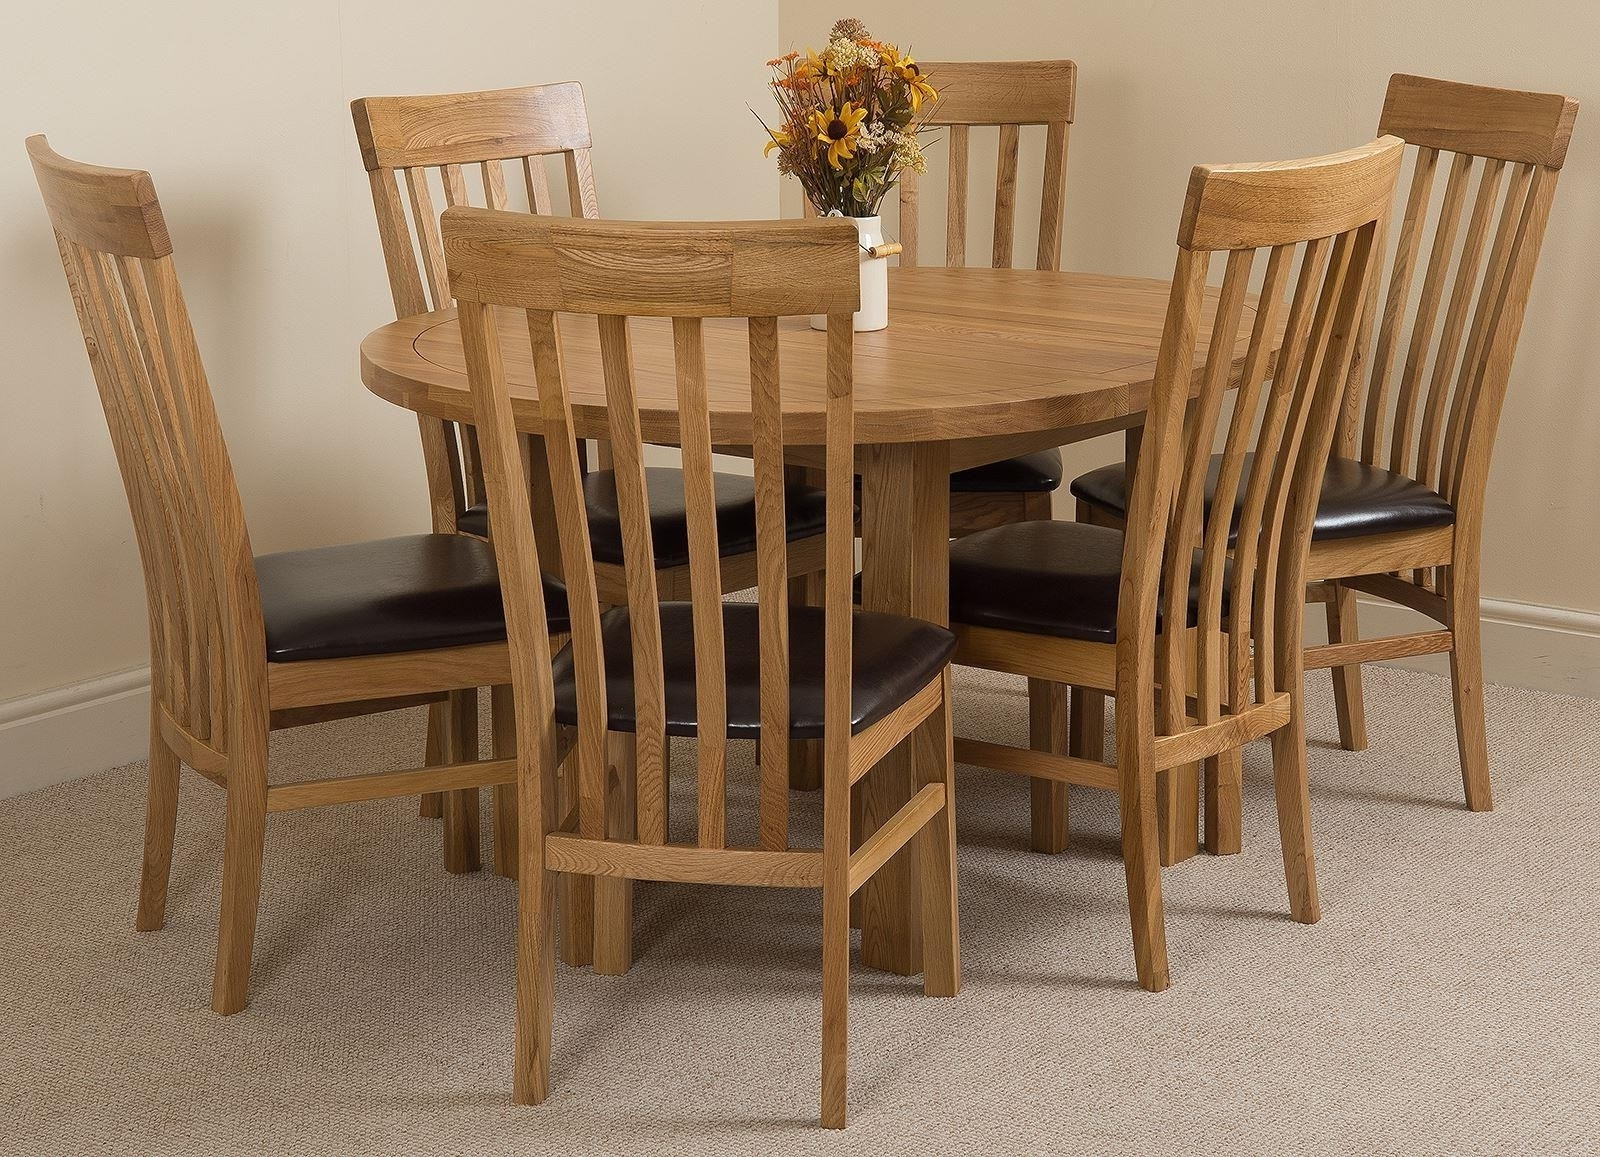 Oak Furniture King Pertaining To Well Liked Cheap Oak Dining Sets (View 7 of 25)